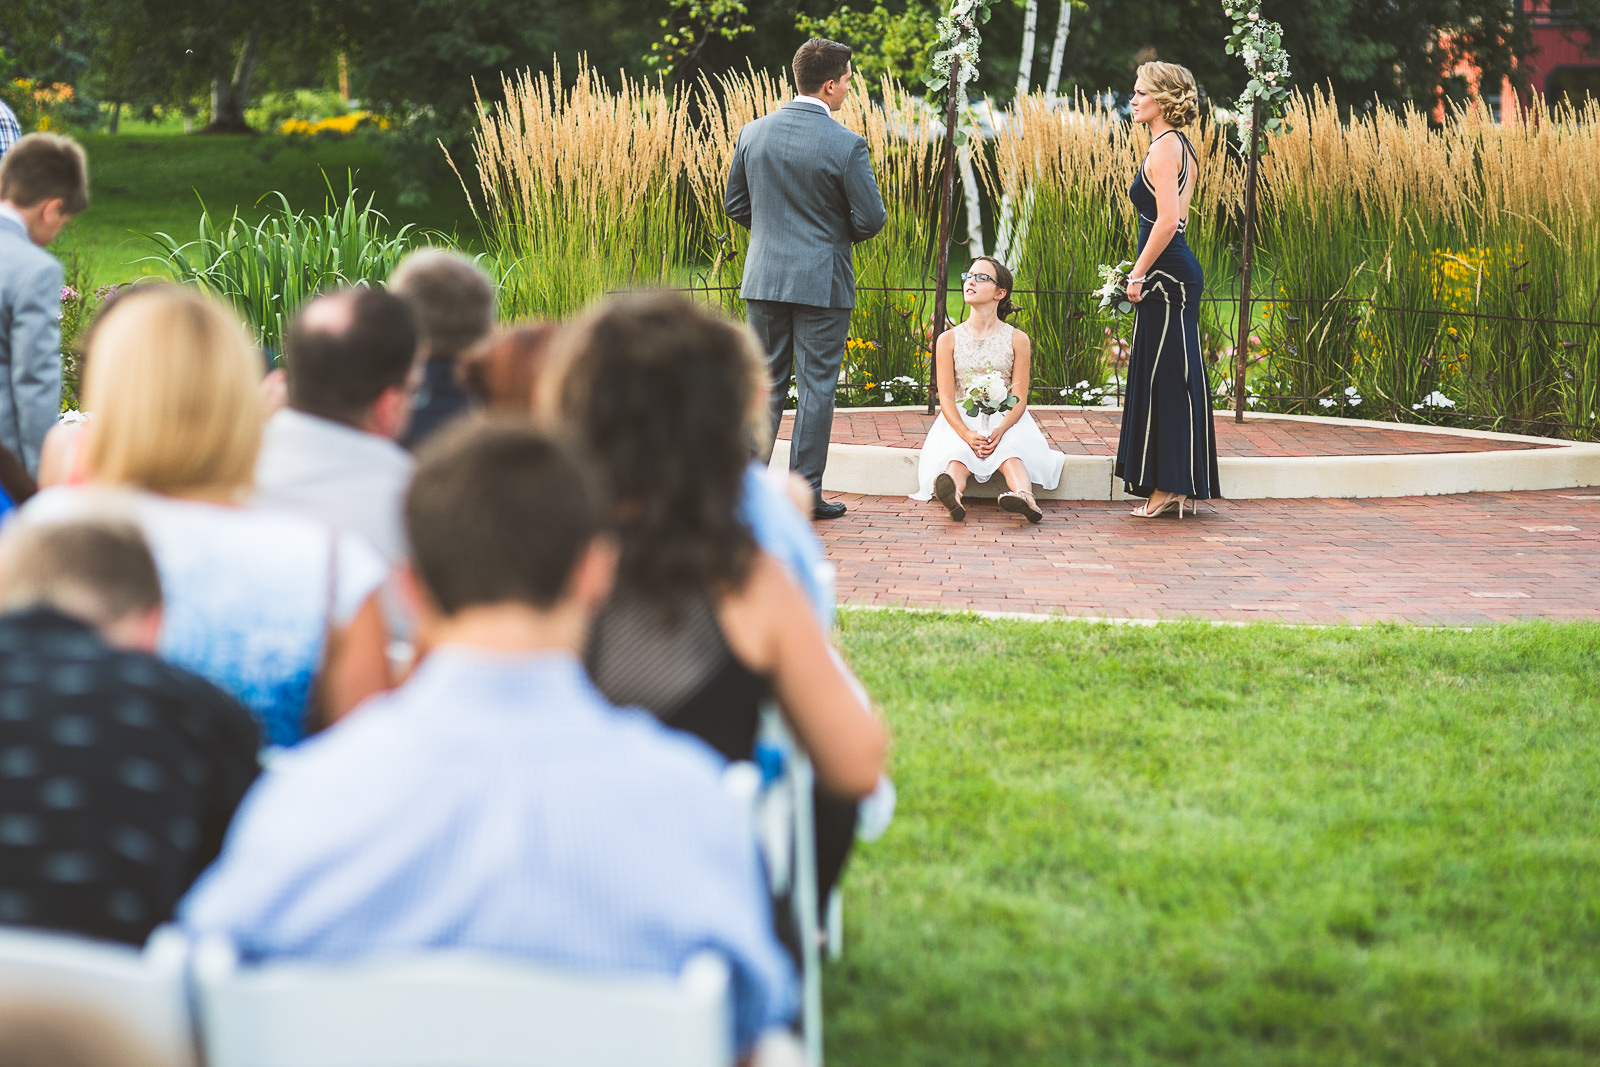 19 daughter sitting - Karen + Scott // Fishermens Inn Wedding Photographer Elburn Illinois